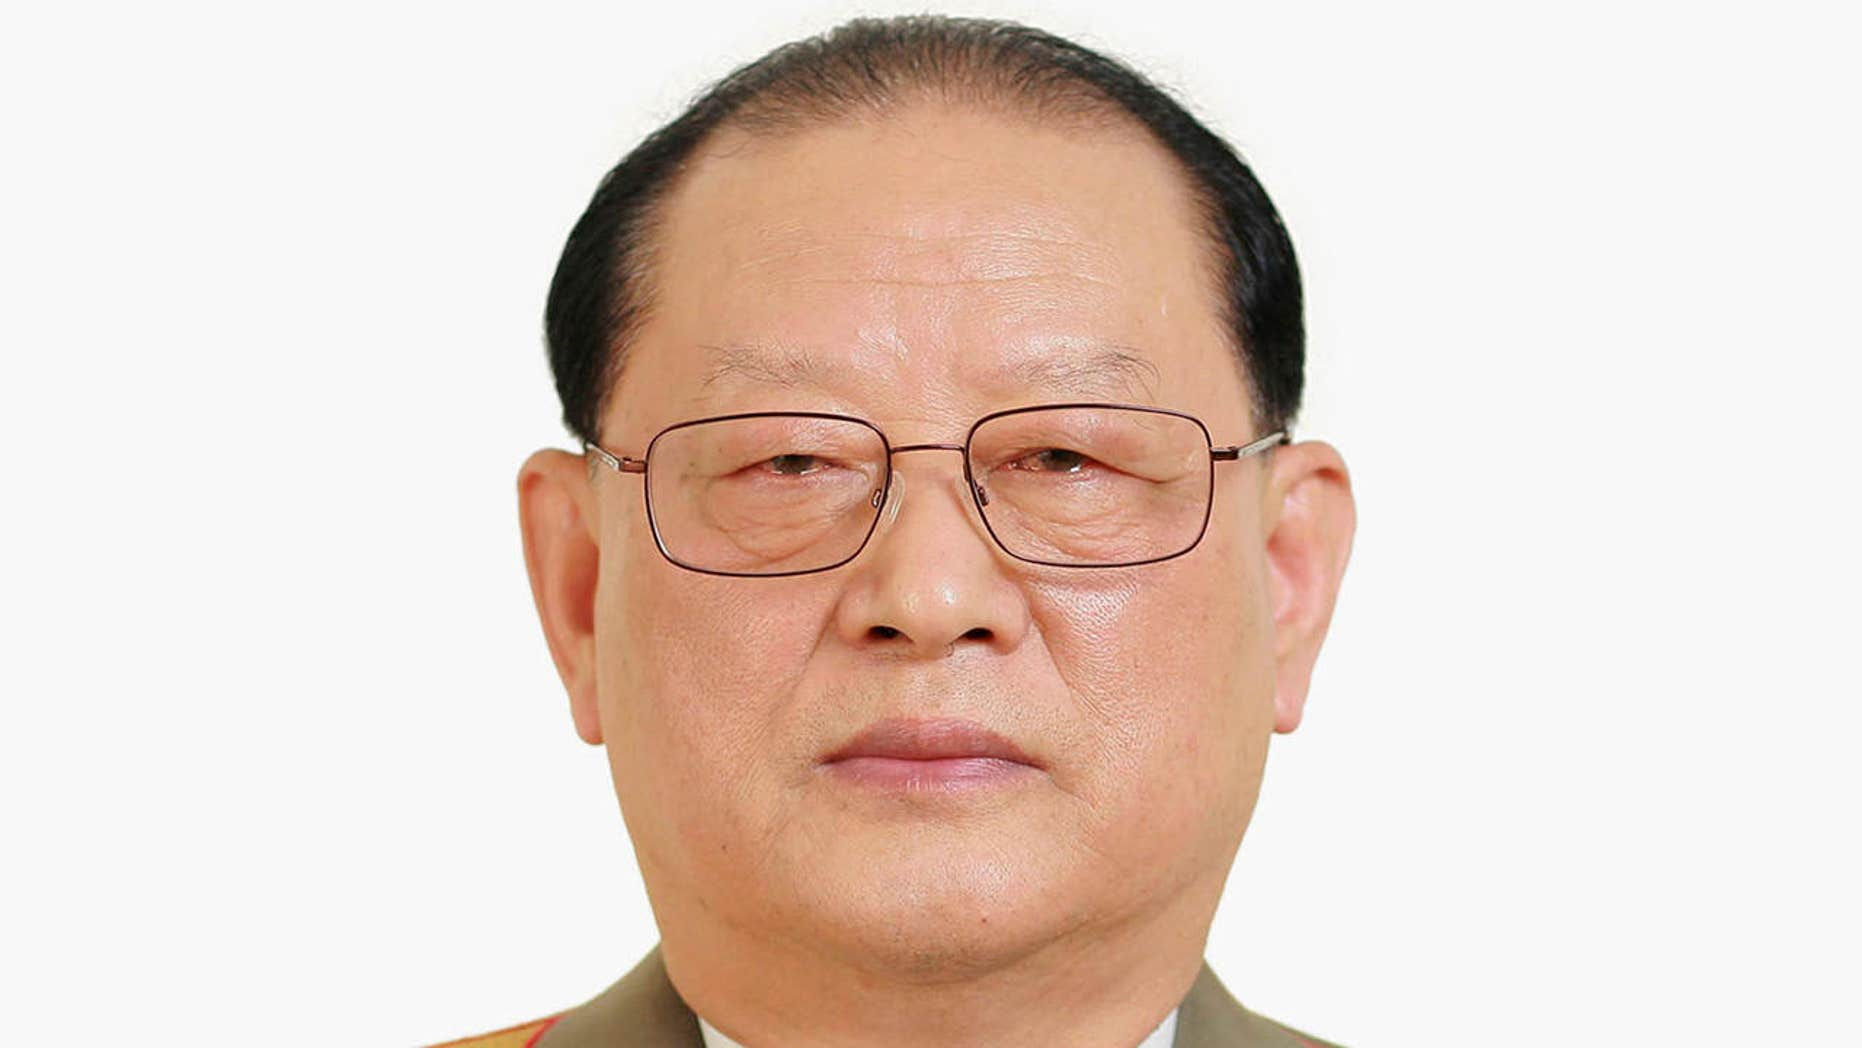 FILE - In this photo distributed on Wednesday, May 11, 2016, by the North Korean government, Kim Won Hong, elected as a member of the Political Bureau of the Workers' Party at the Workers' Party congress on May 9, poses for a photo.